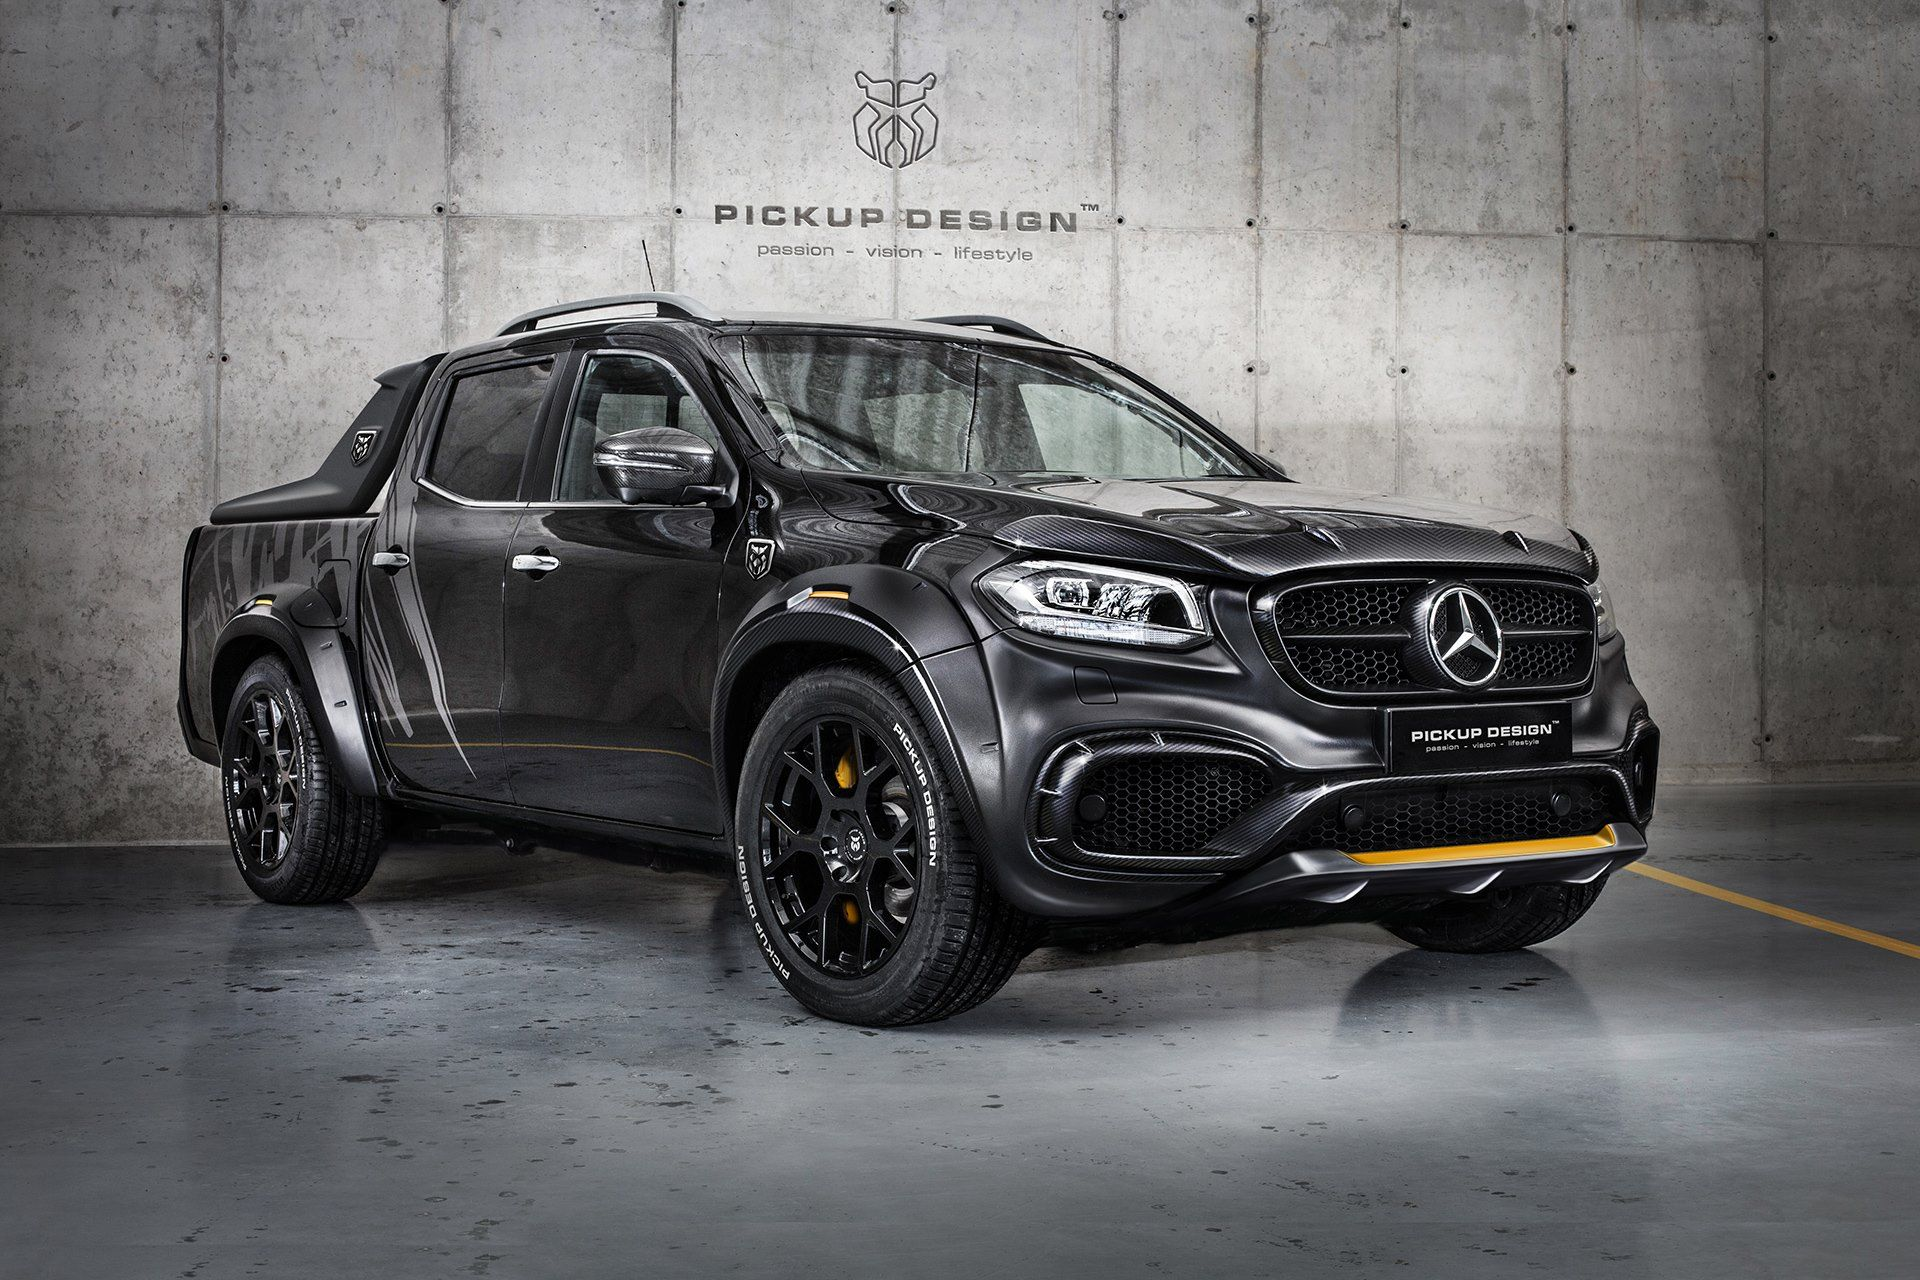 Beauty And The Beast Mercedes X Class Gets Two Tuning Jobs From Carlex Carscoops Custom Mercedes Custom Mercedes Benz Benz